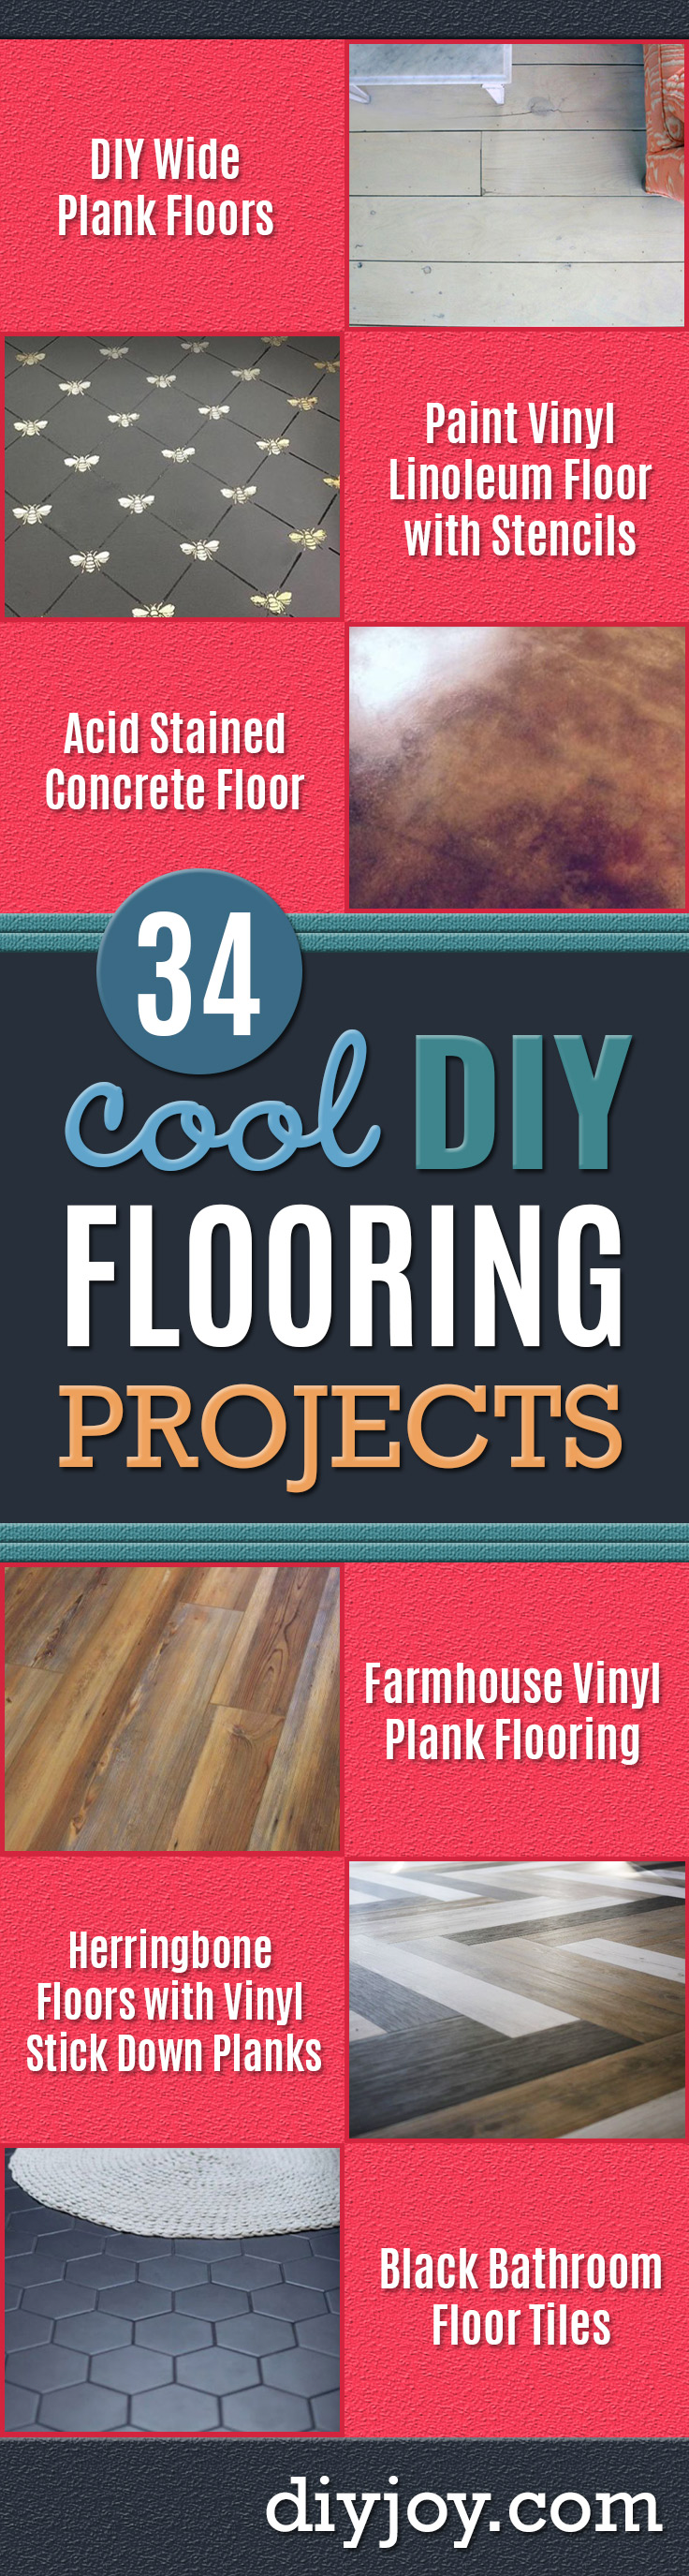 DIY Flooring Projects - Cheap Floor Ideas for Those On A Budget - Inexpensive Ways To Refinish Floors With Concrete, Laminate, Plywood, Peel and Stick Tile, Wood, Vinyl - Easy Project Plans and Unique Creative Tutorials for Cool Do It Yourself Home Decor http://diyjoy.com/diy-flooring-projects